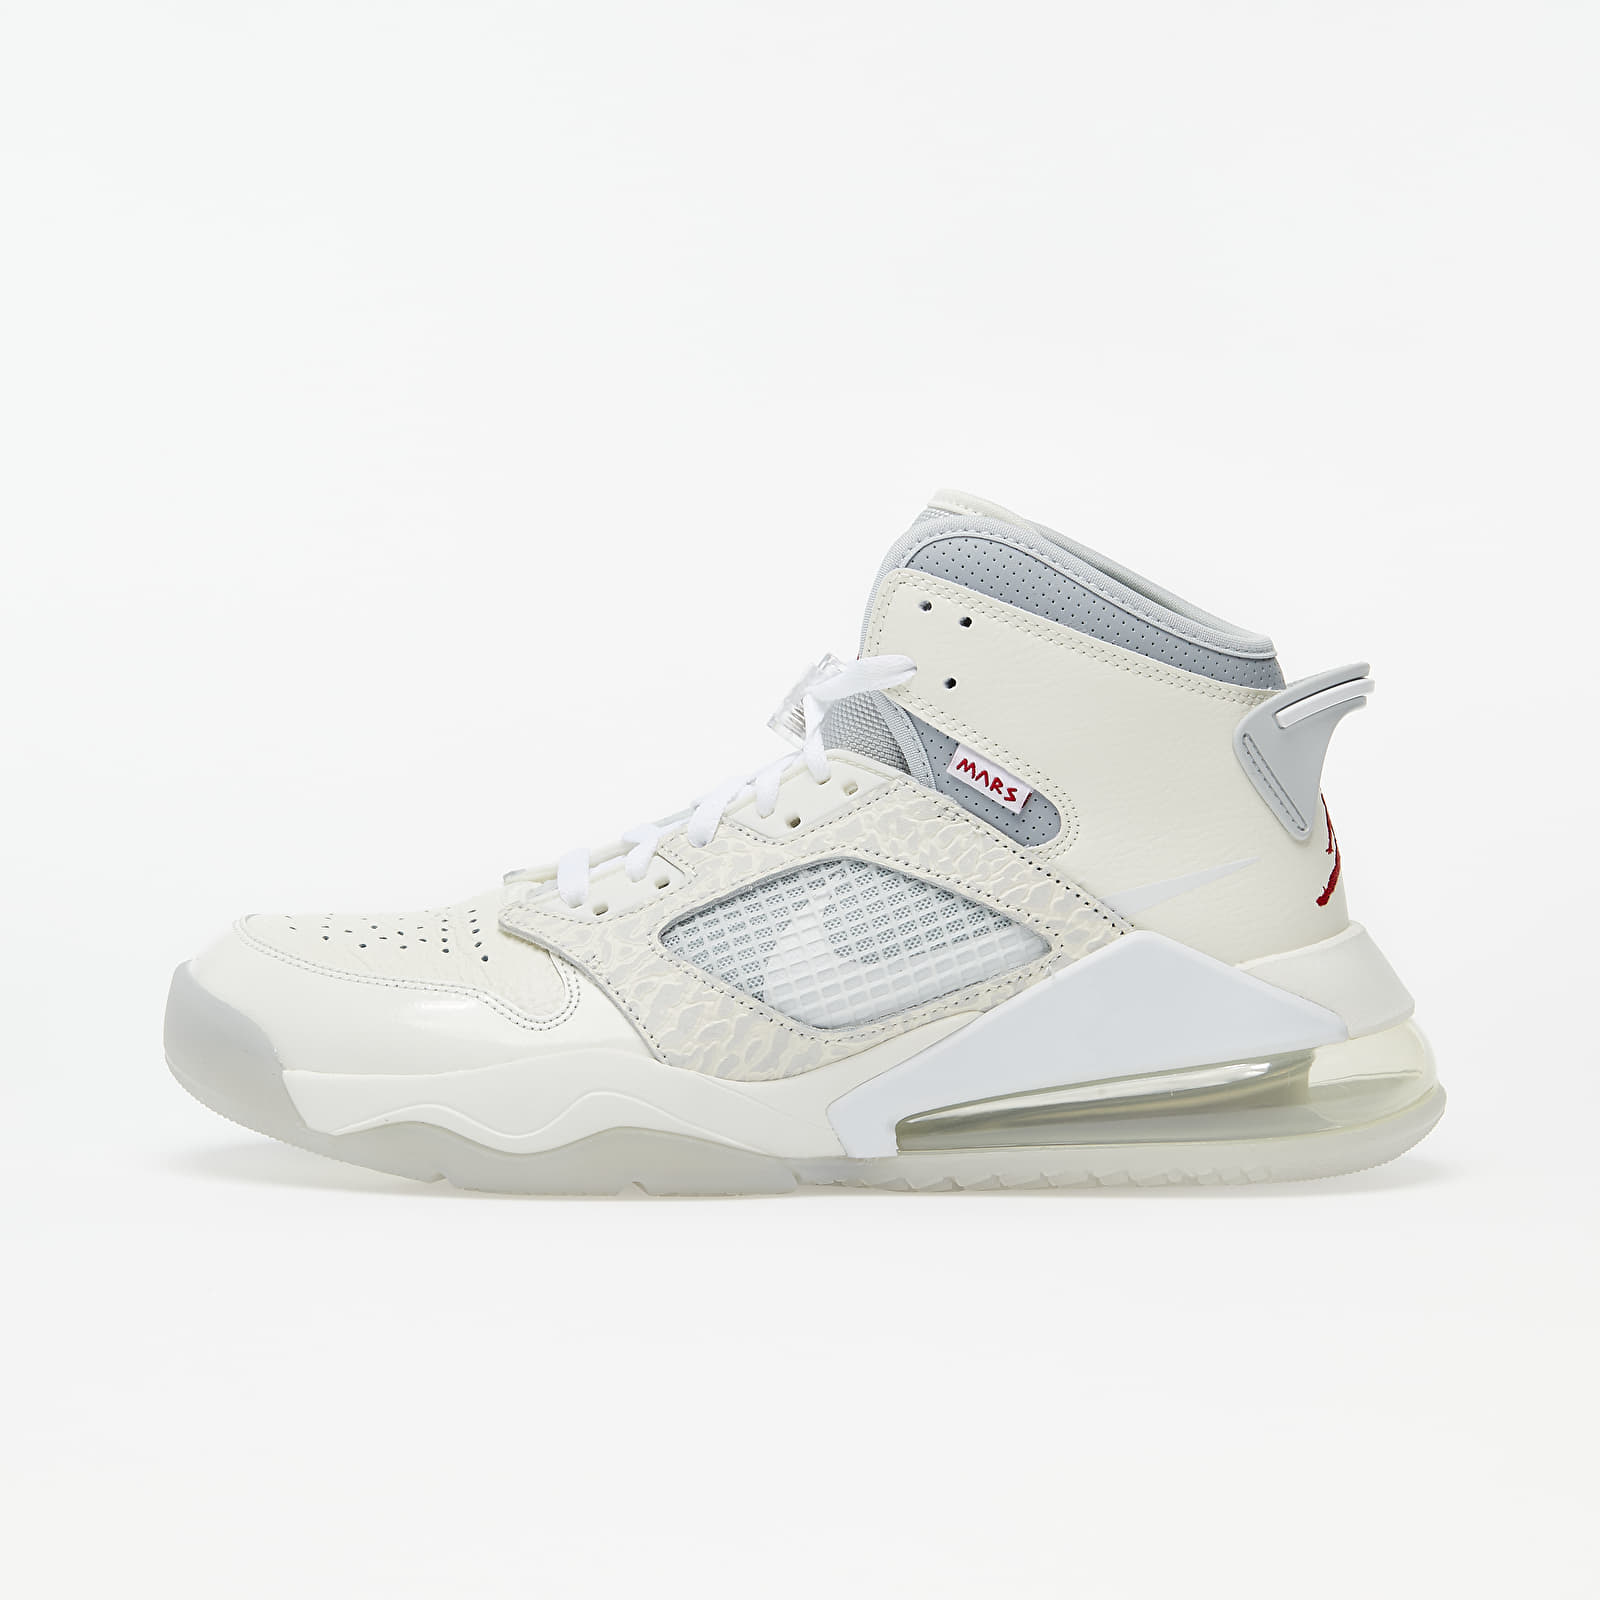 Jordan Mars 270 Sail/ White-Pure Platinum-Wolf Grey CT3445-100